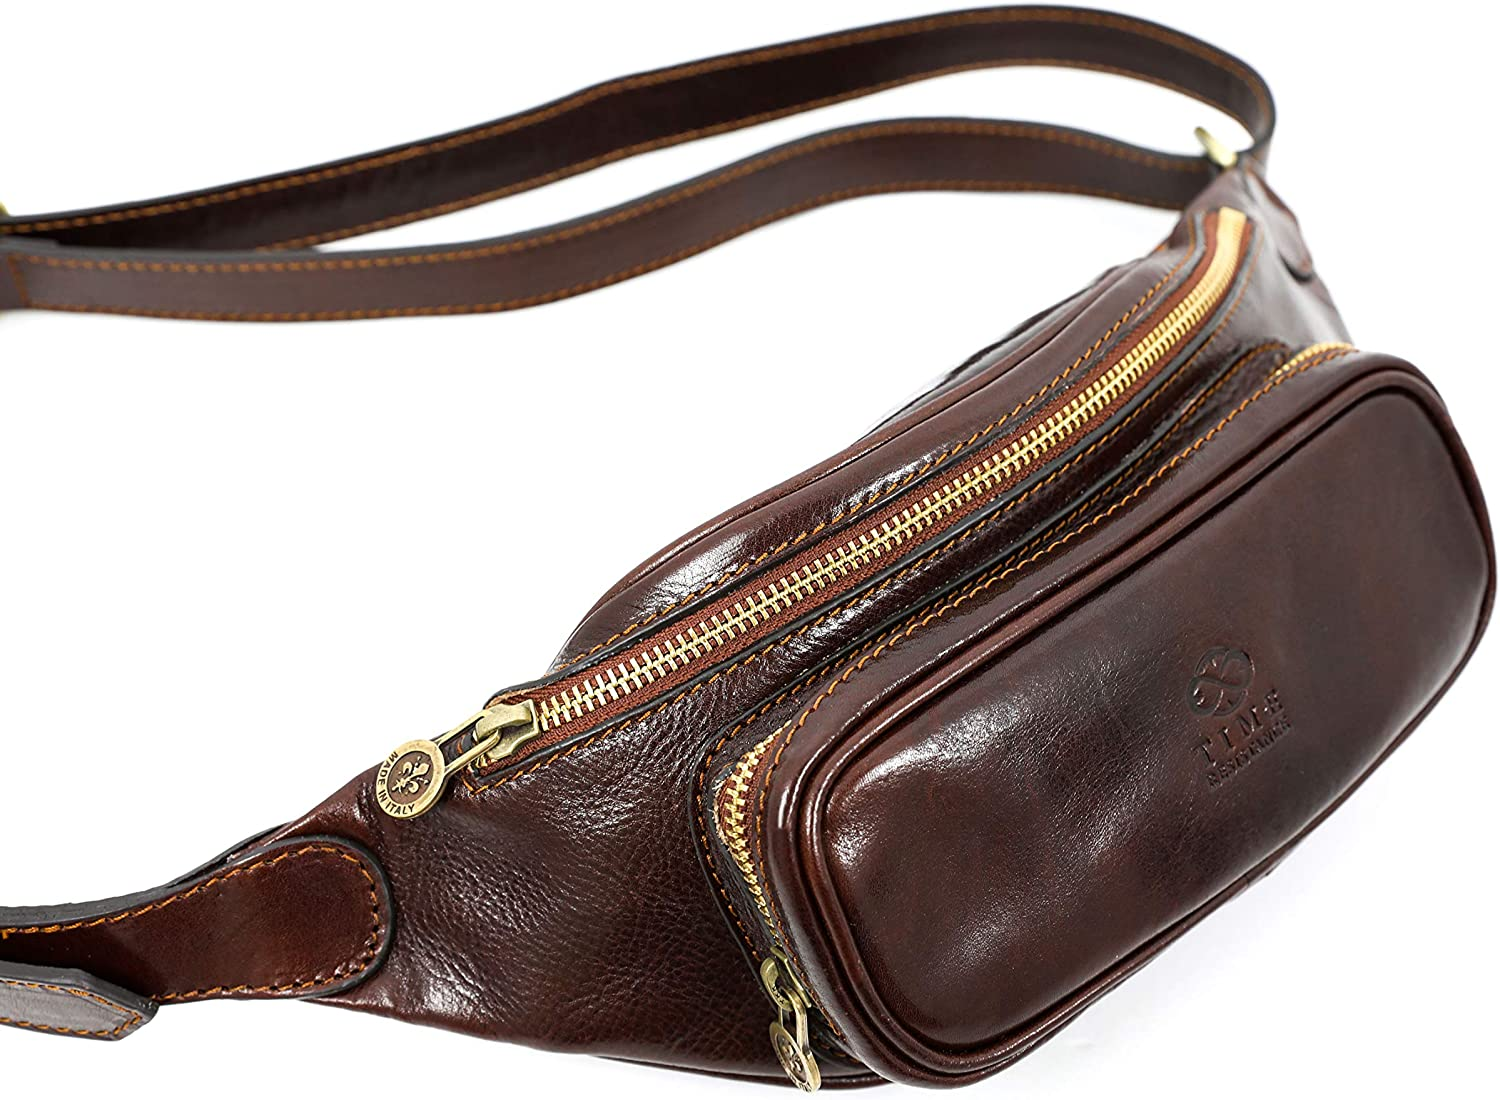 Leather Waist Pack Portland Mall Selling and selling Belly L Belt Bag